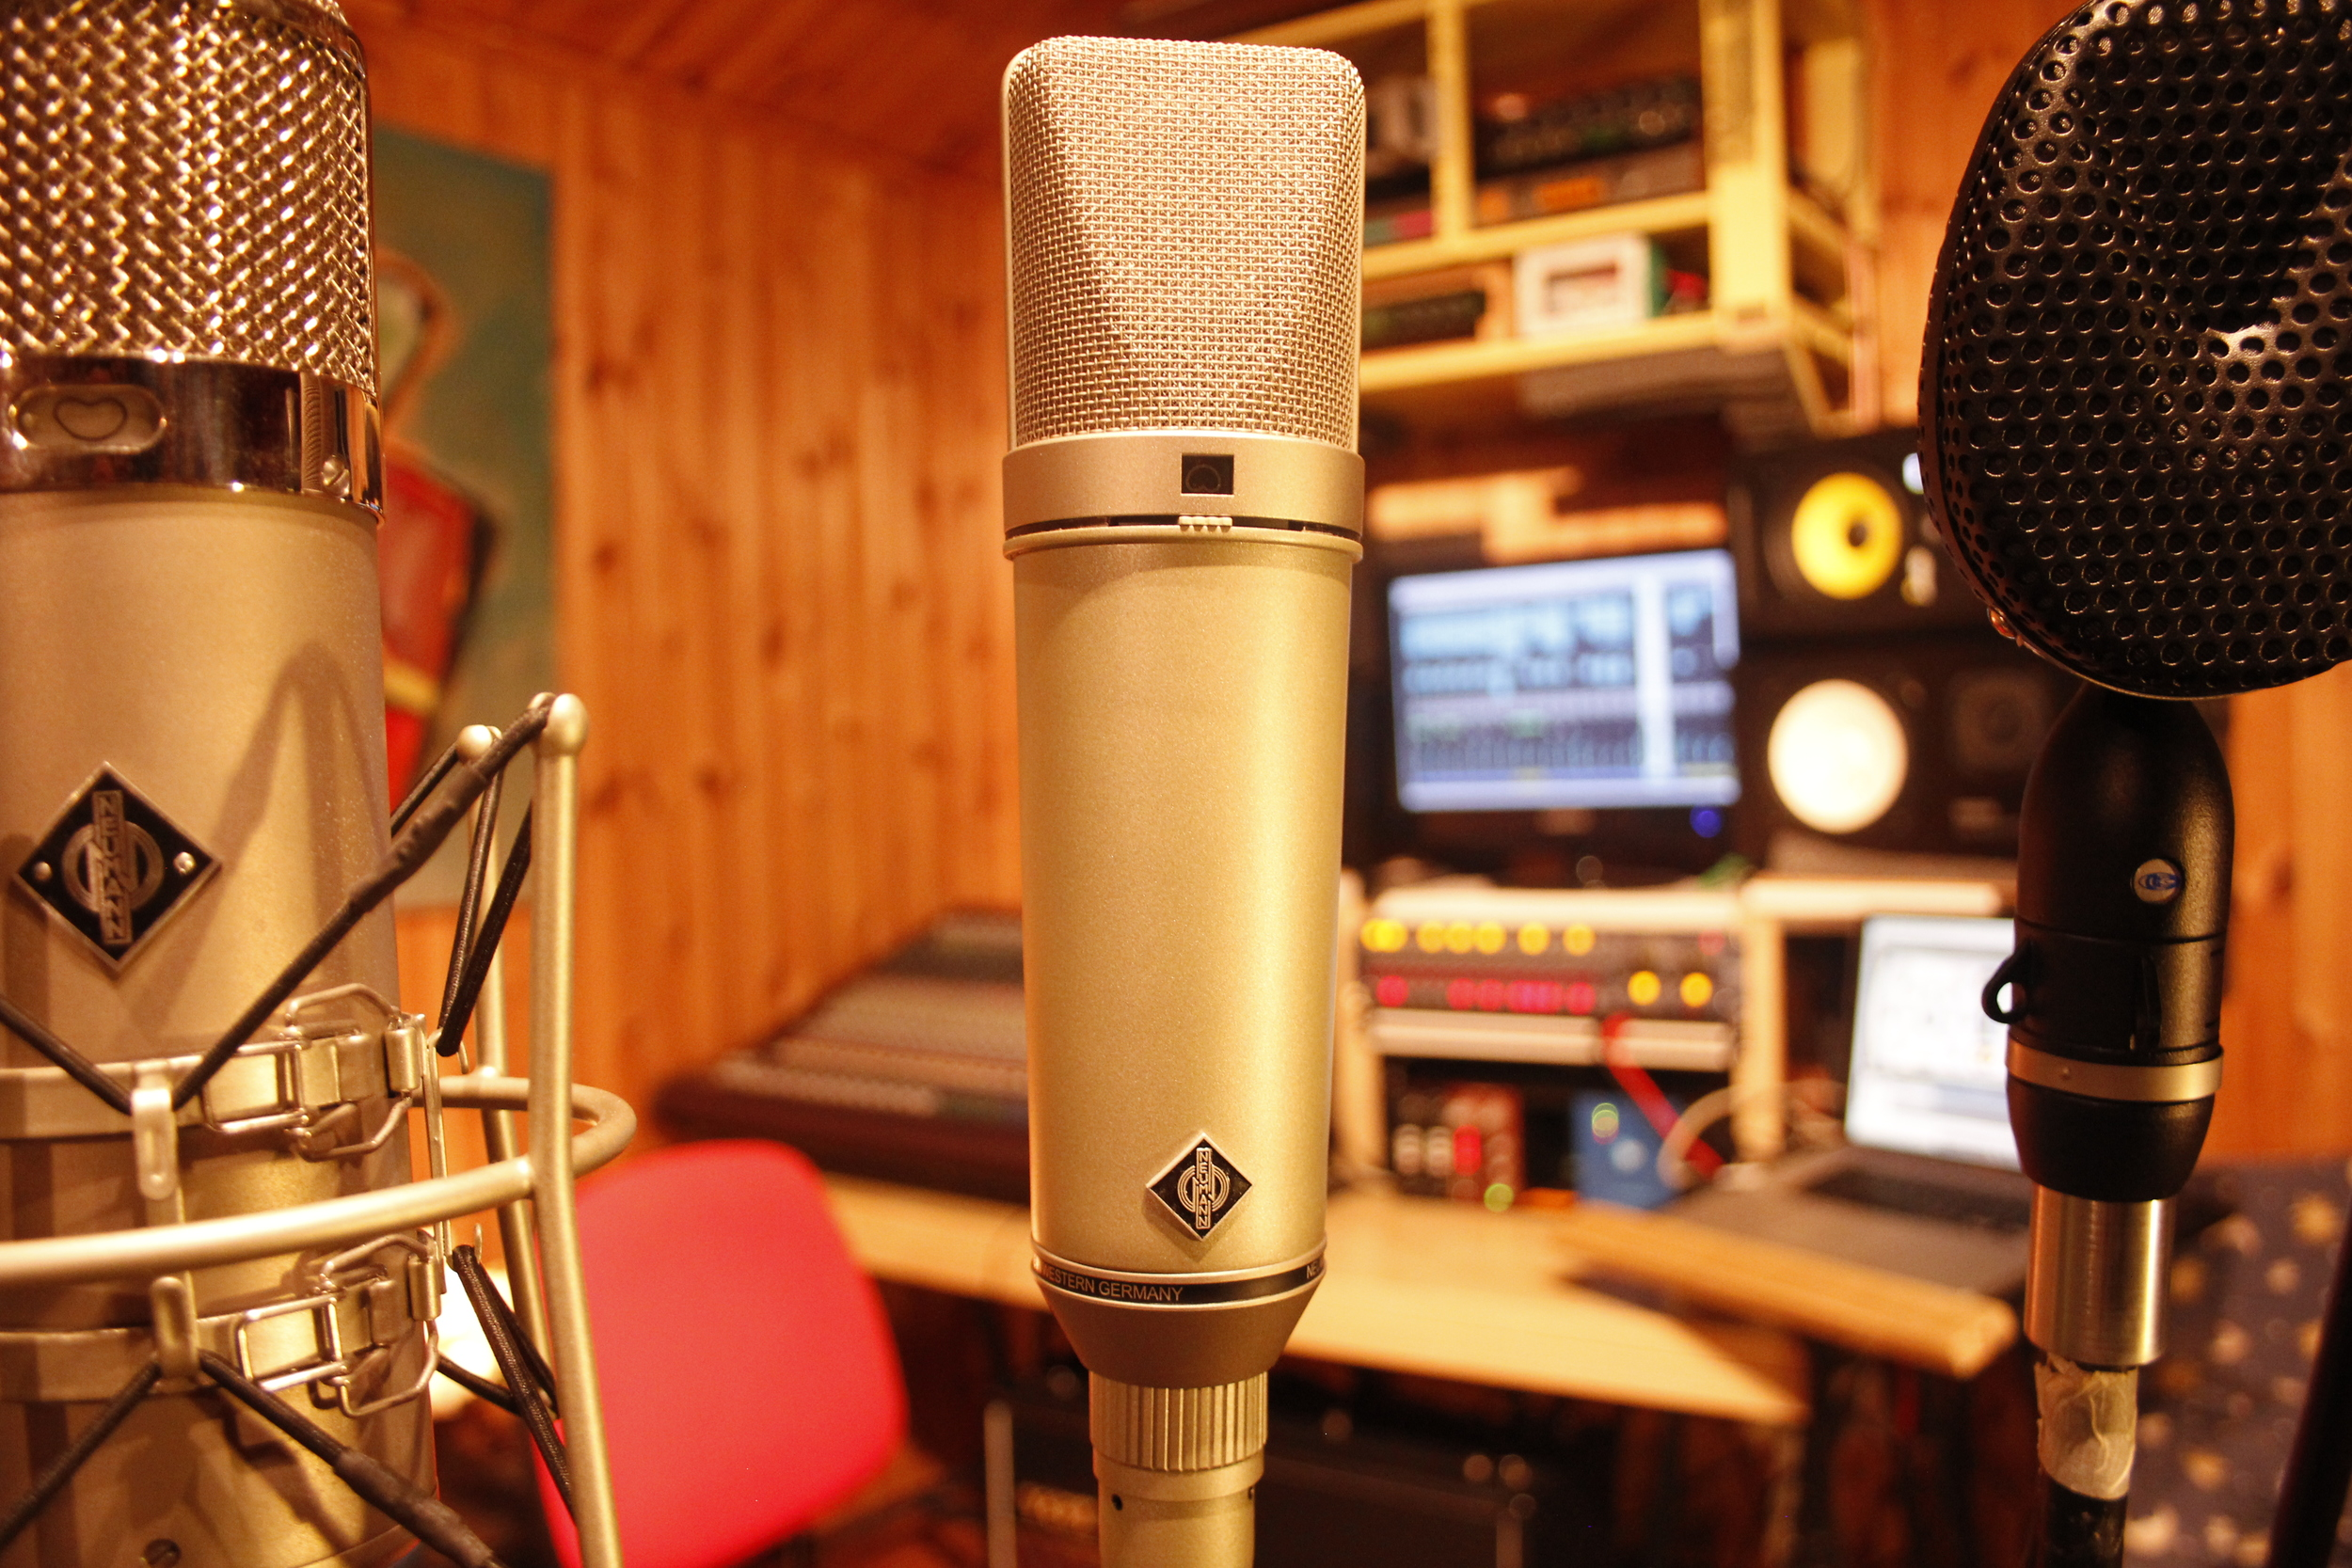 Neumann U67. Everyone from Nirvana to Bob Dylan recorded with one of these.